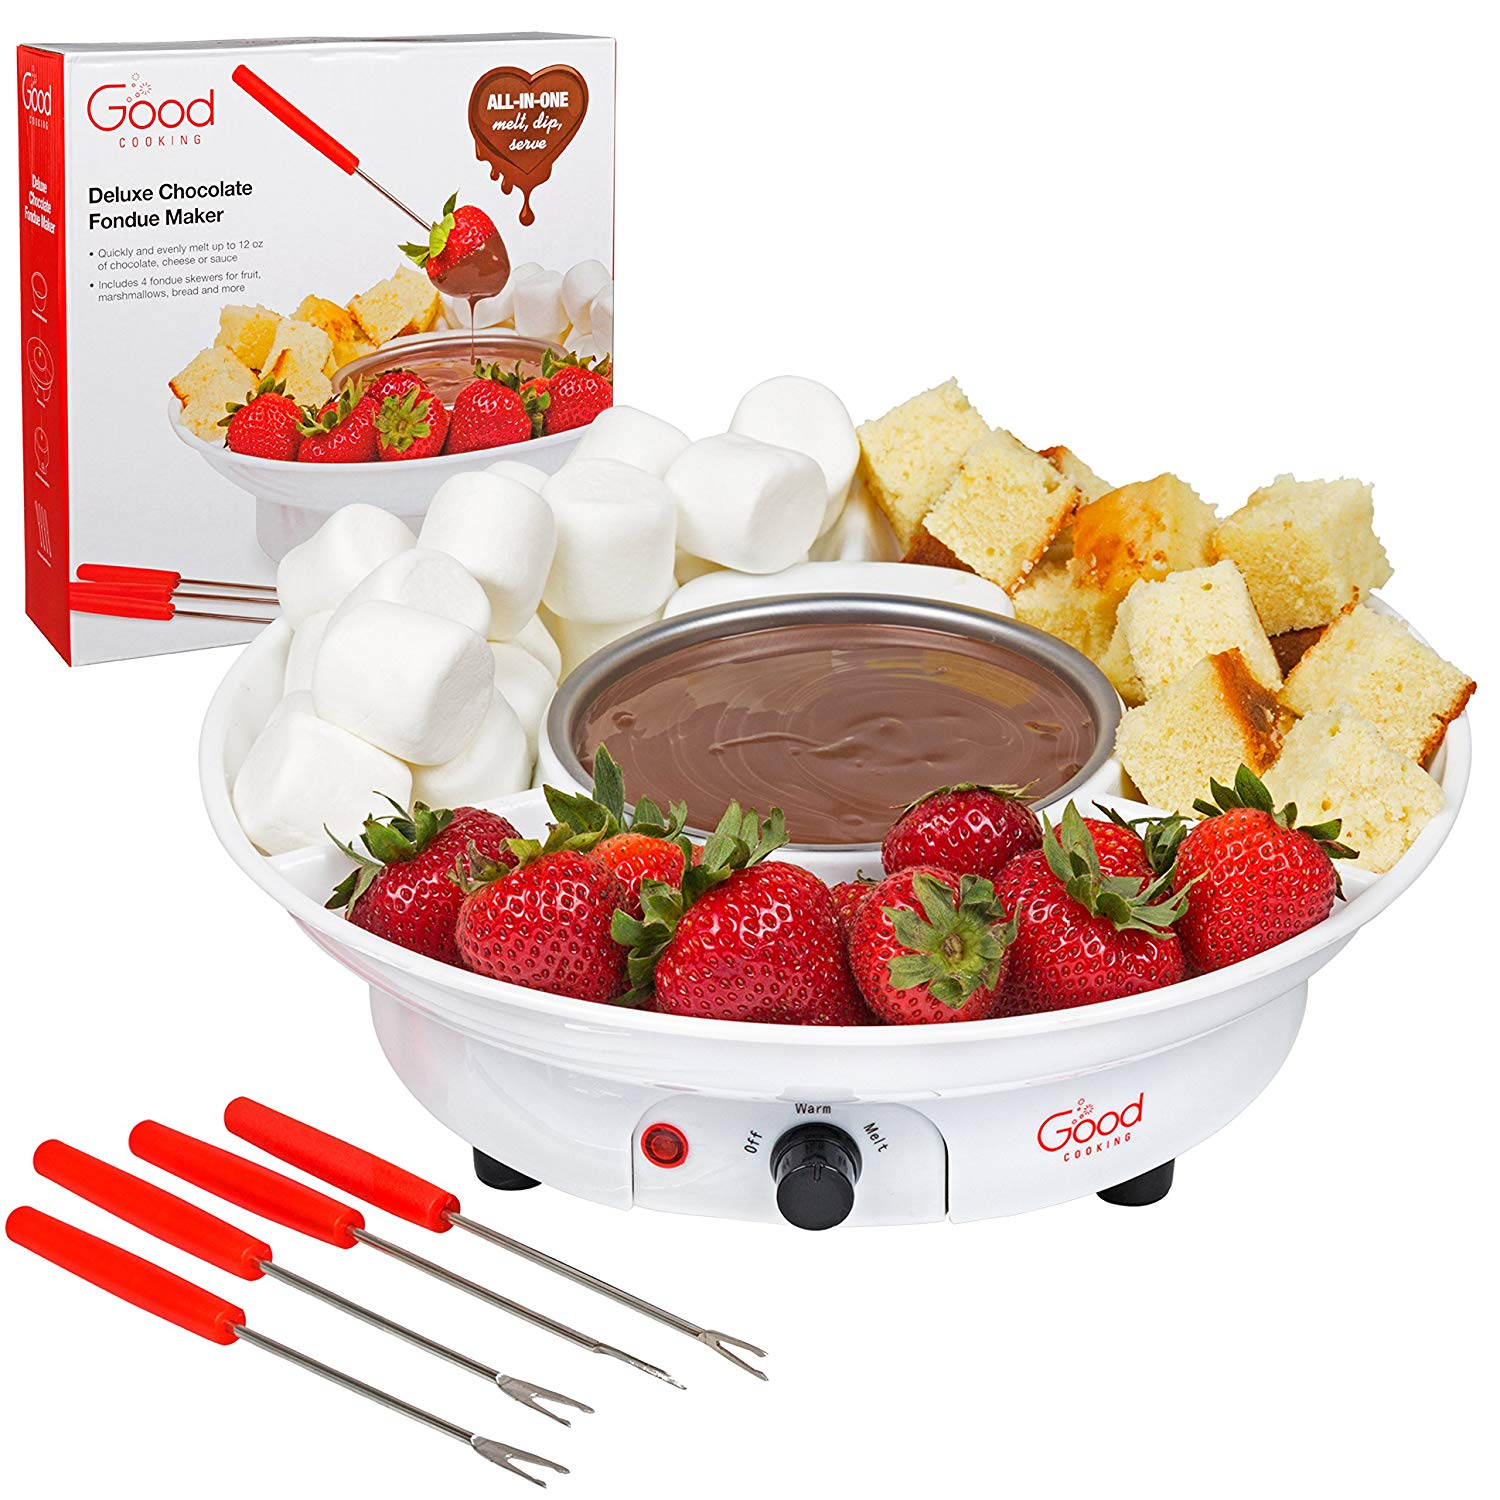 Review of Chocolate Fondue Maker- Deluxe Electric Dessert Fountain Fondu Pot Set with 4 Forks and Party Serving Tray